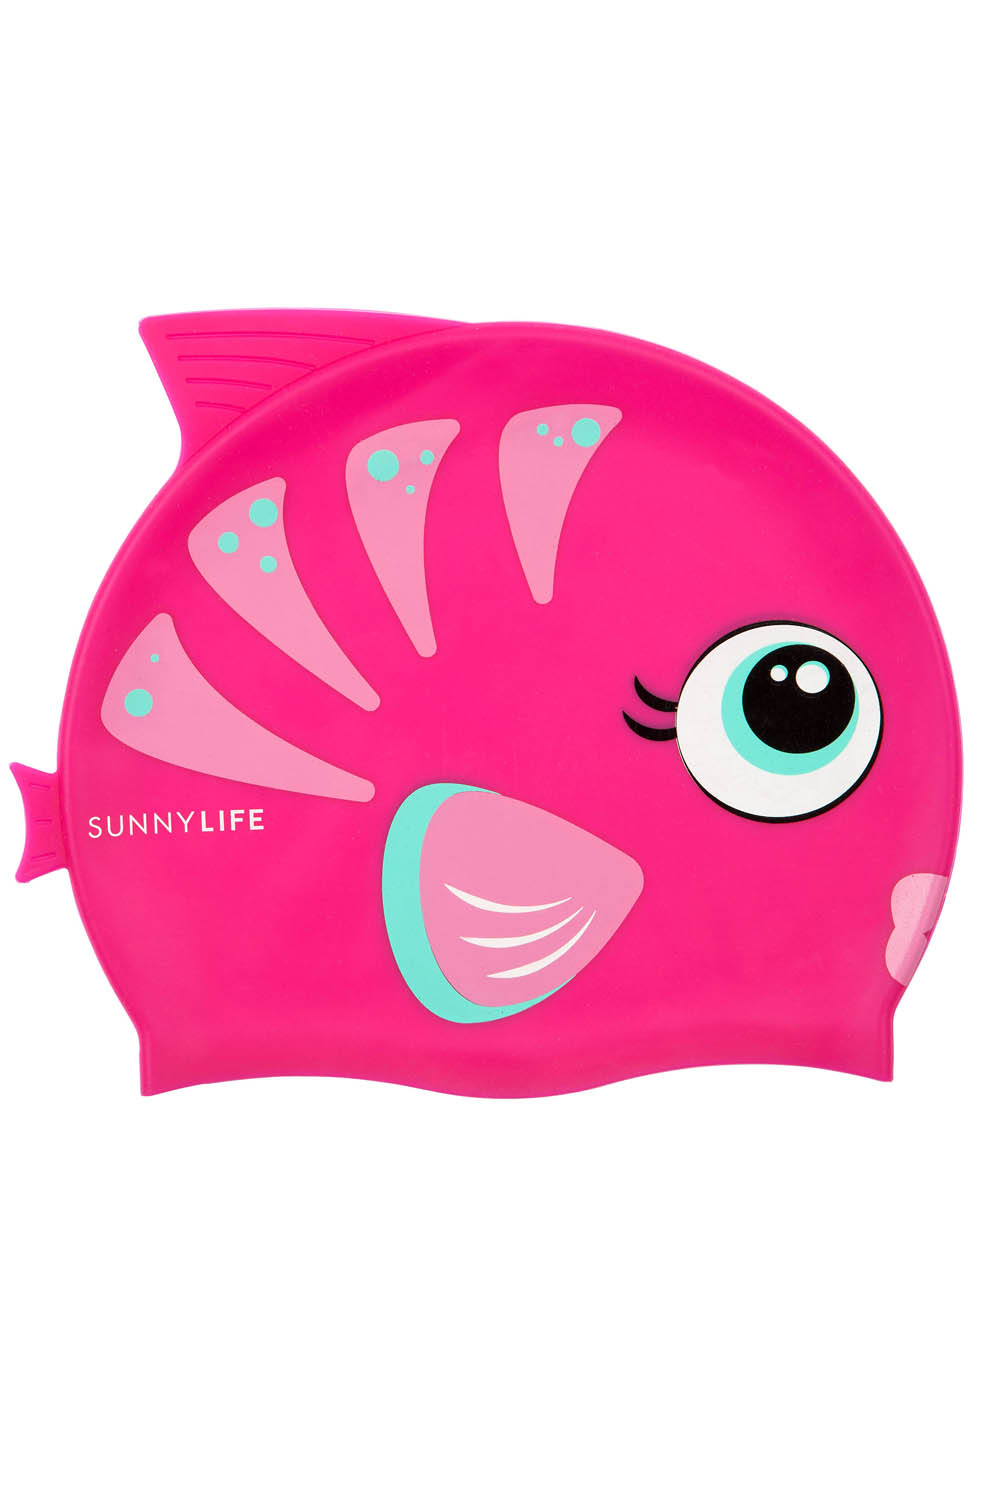 SunnyLIFE Girls Shaped Swimming Cap 3-9 Unicorn White One Size